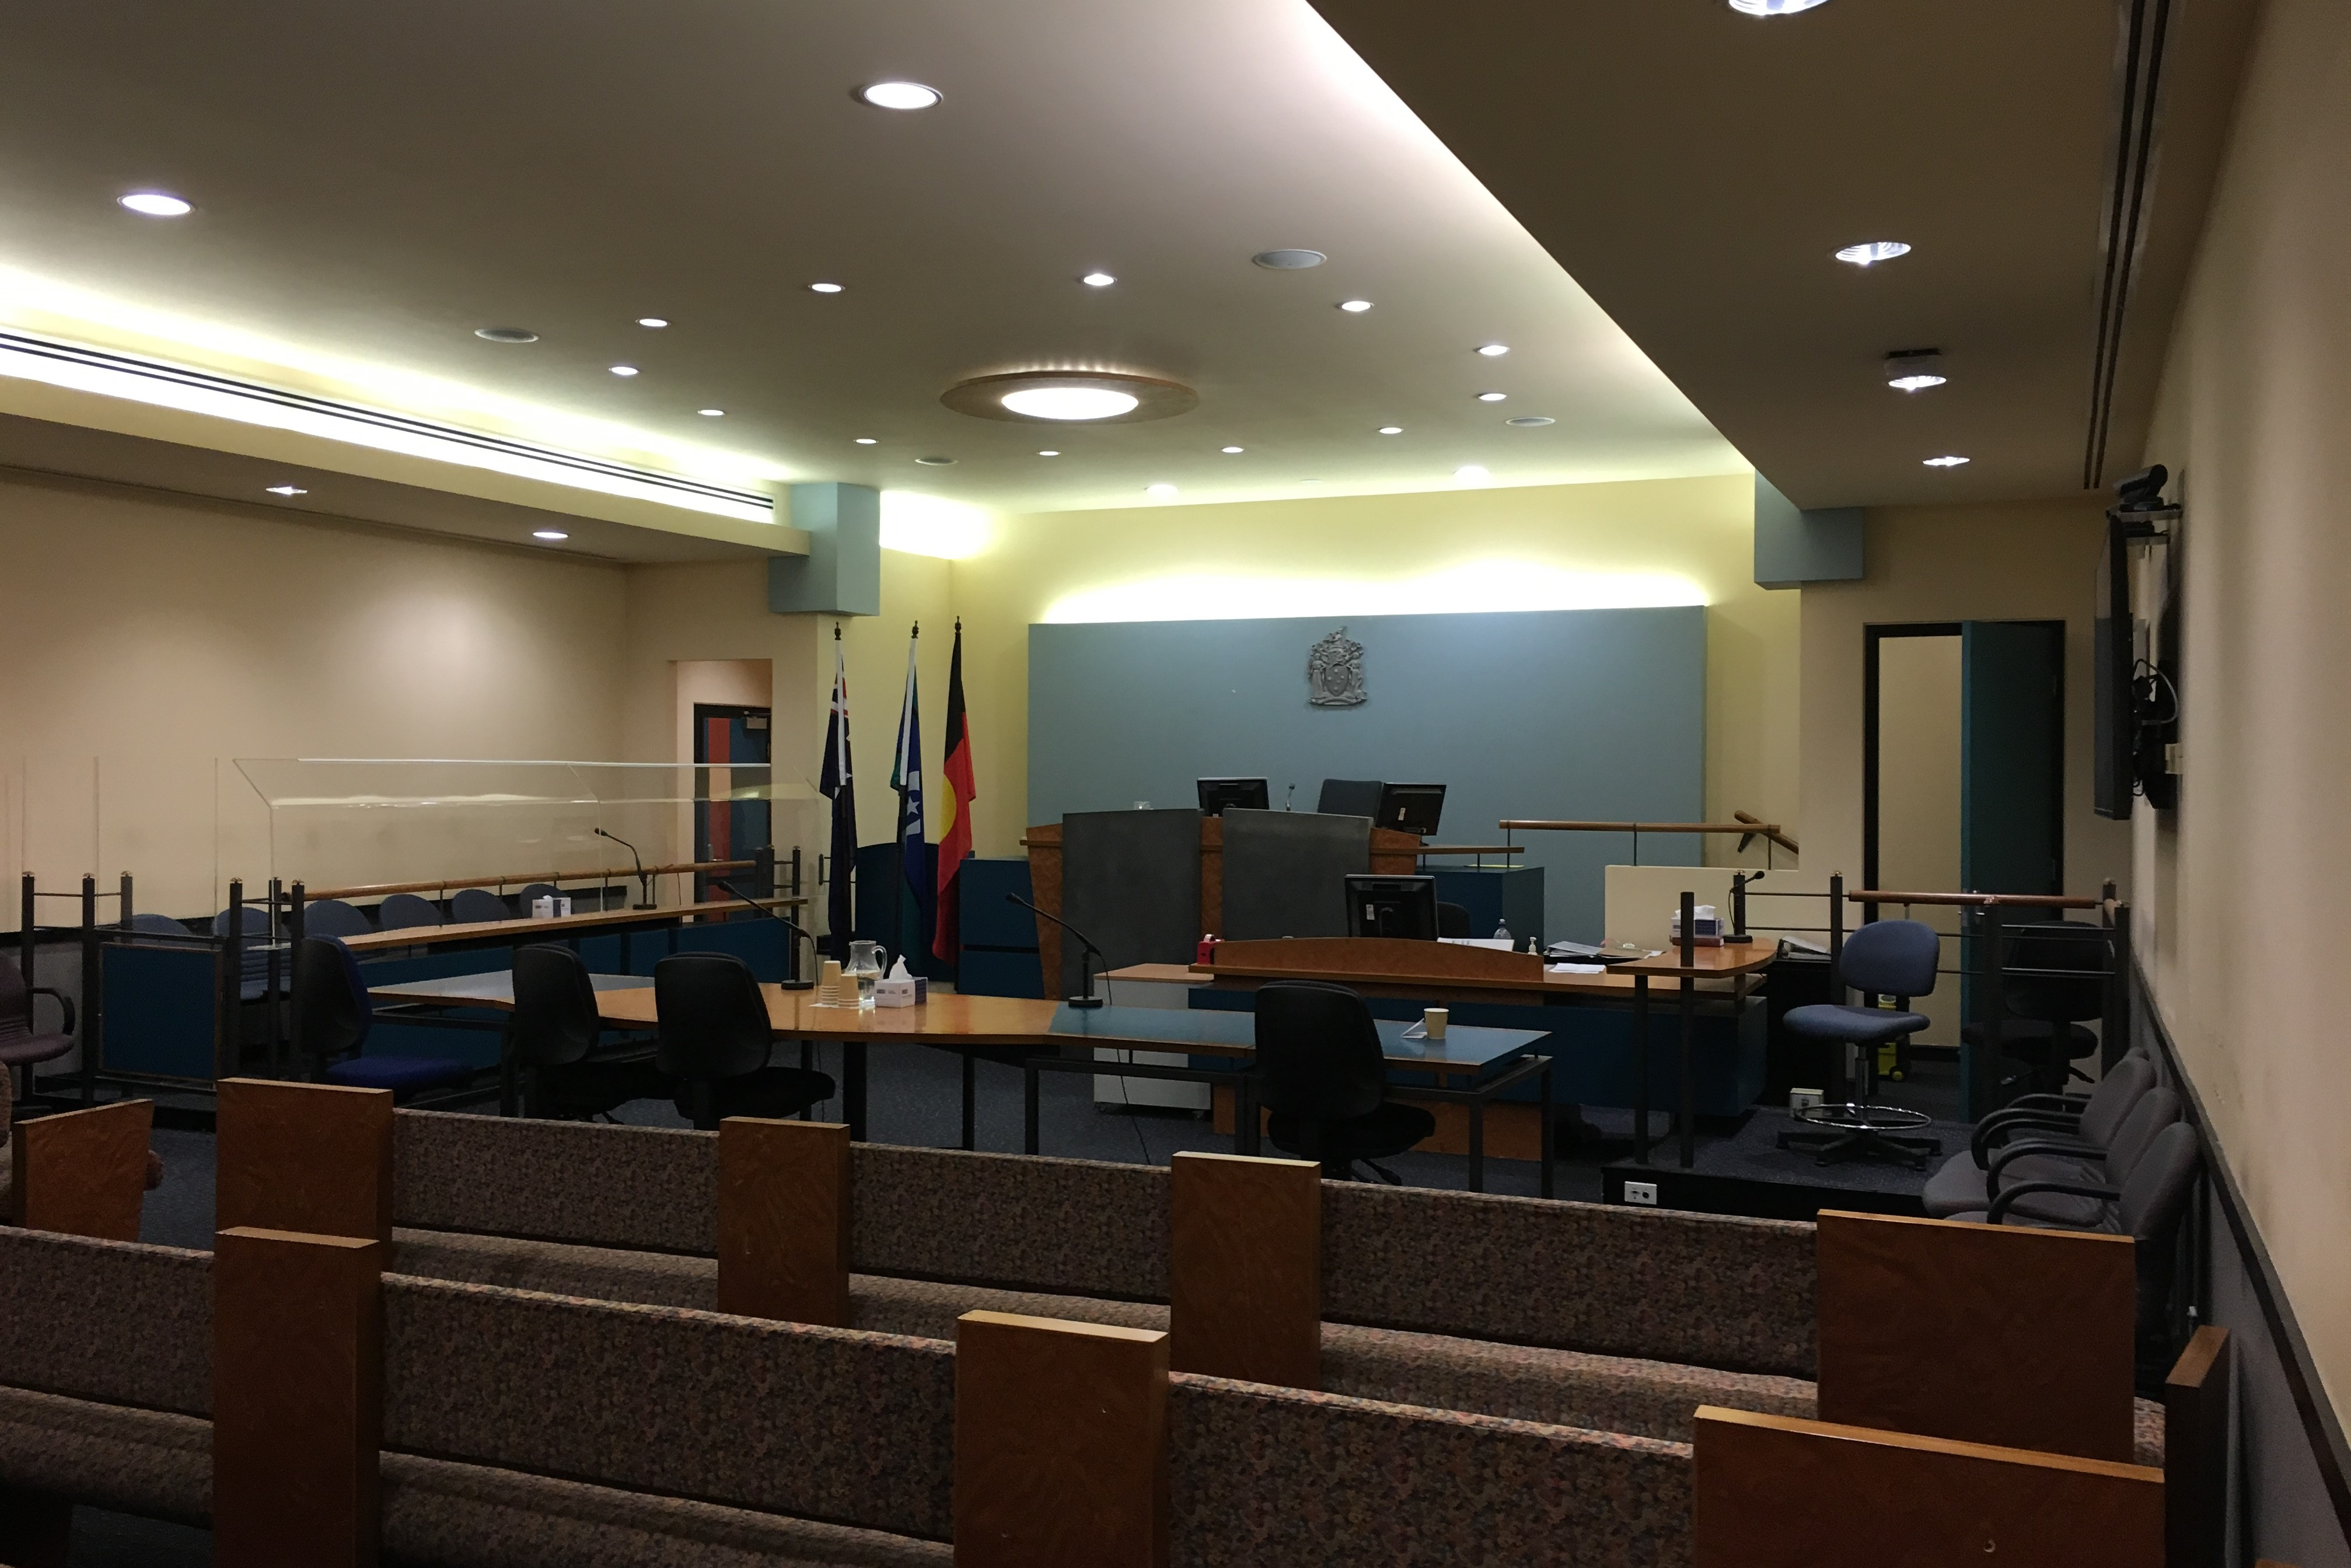 Courtroom inside Dandenong Magistrates' Court